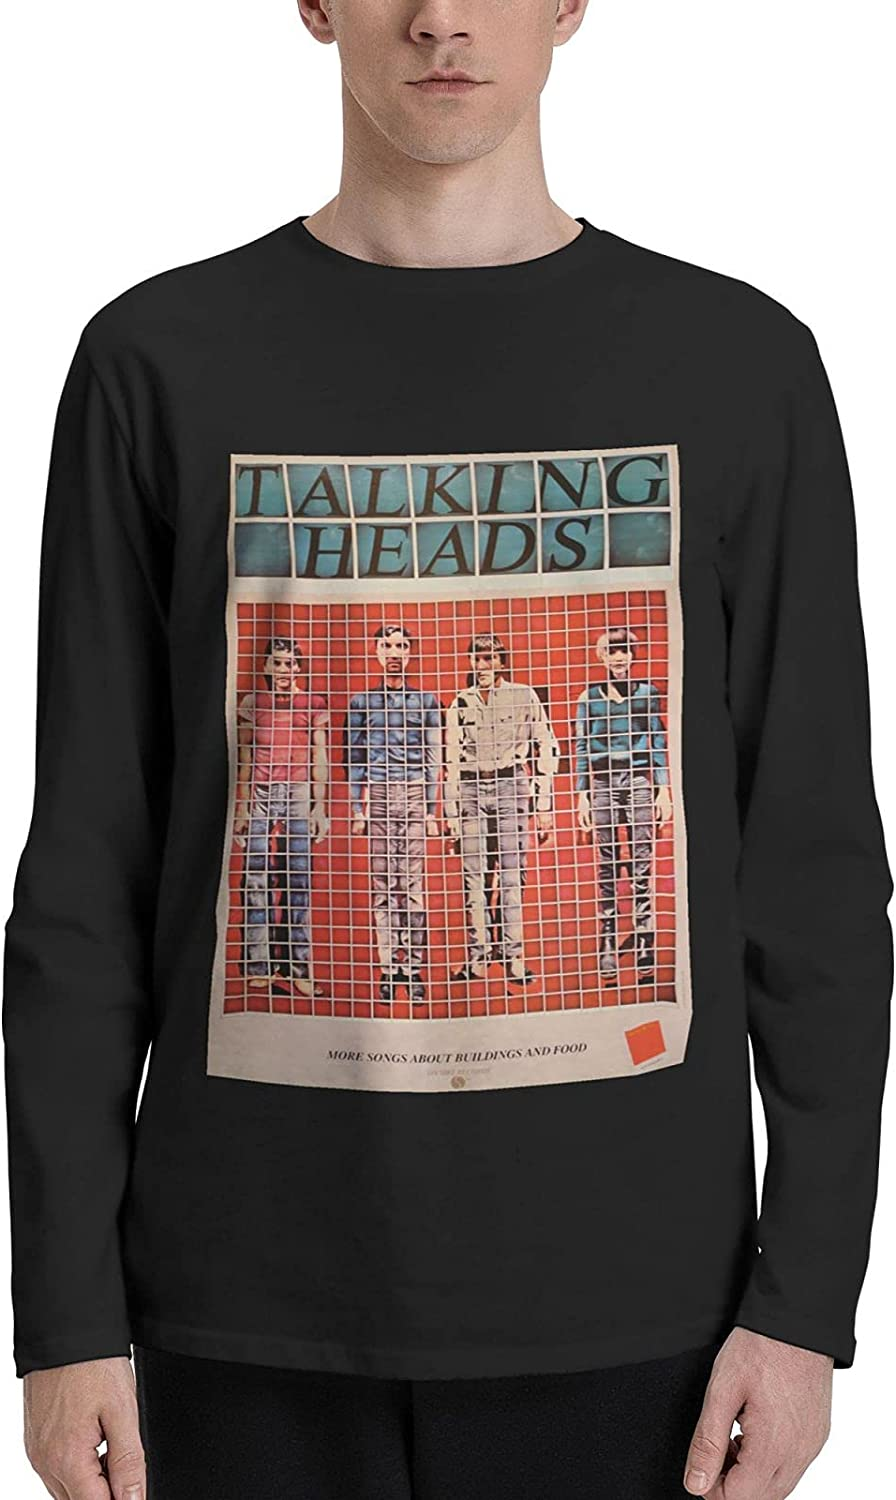 Talking Heads More Songs About Buildings and Food Long Sleeve T-Shirts Mens Fashion Crew Neck Tops Tshirt